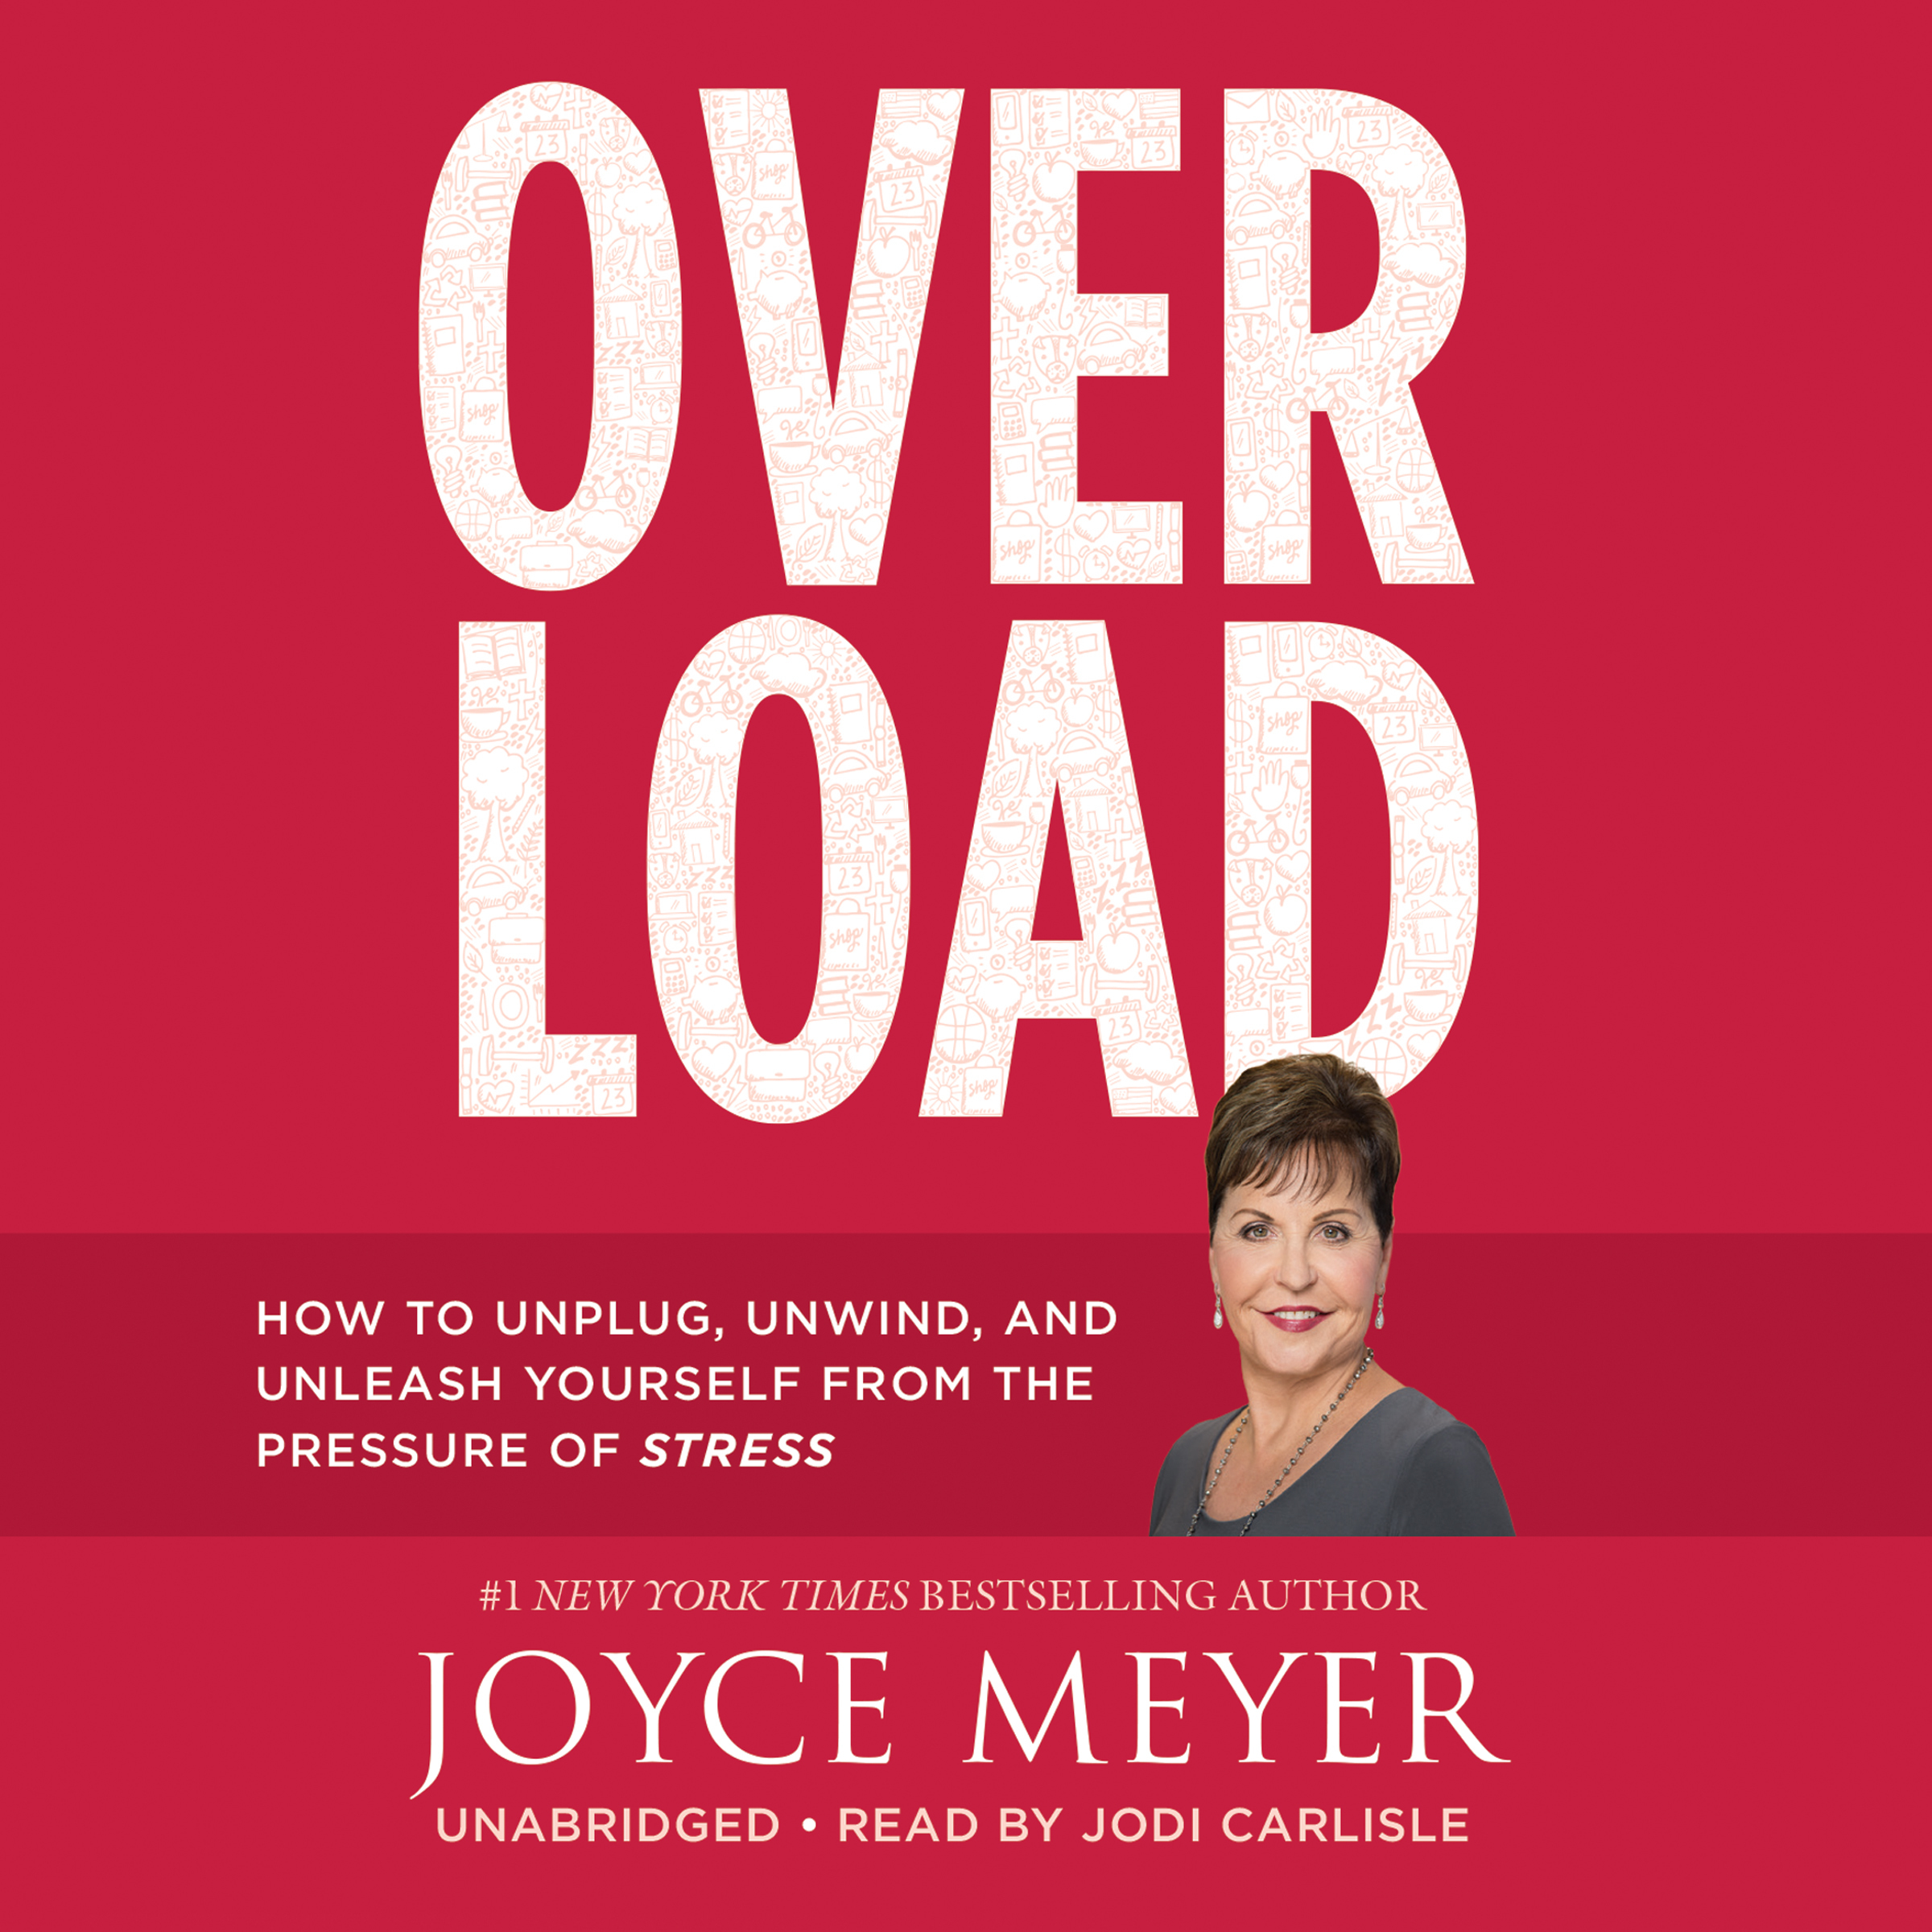 Printable Overload: How to Unplug, Unwind, and Unleash Yourself from the Pressure of Stress Audiobook Cover Art